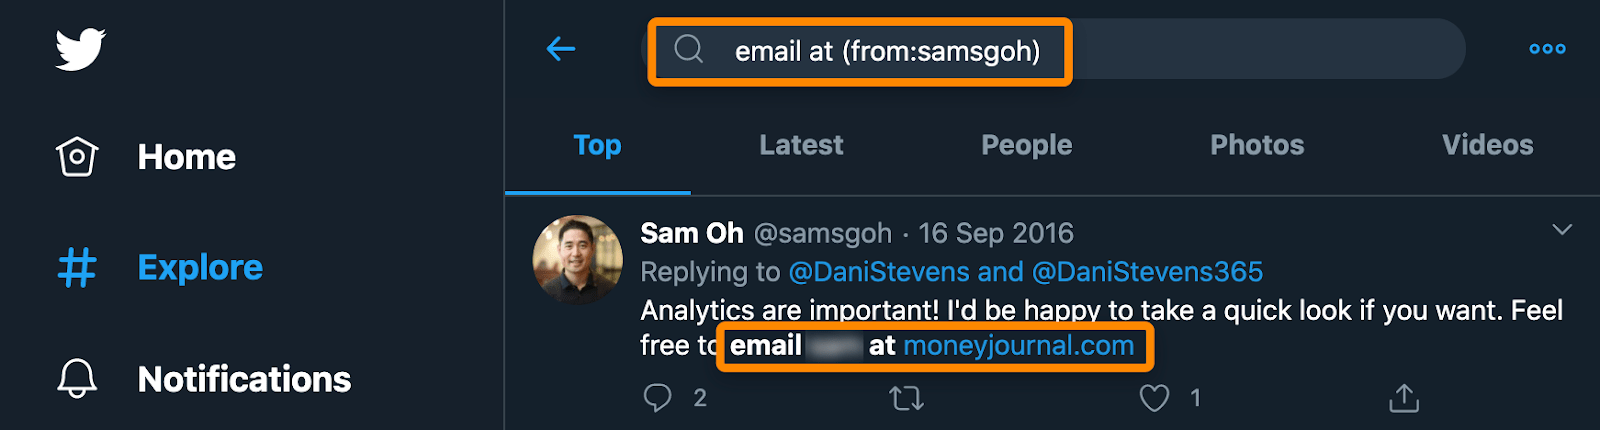 twitter advanced search email 1